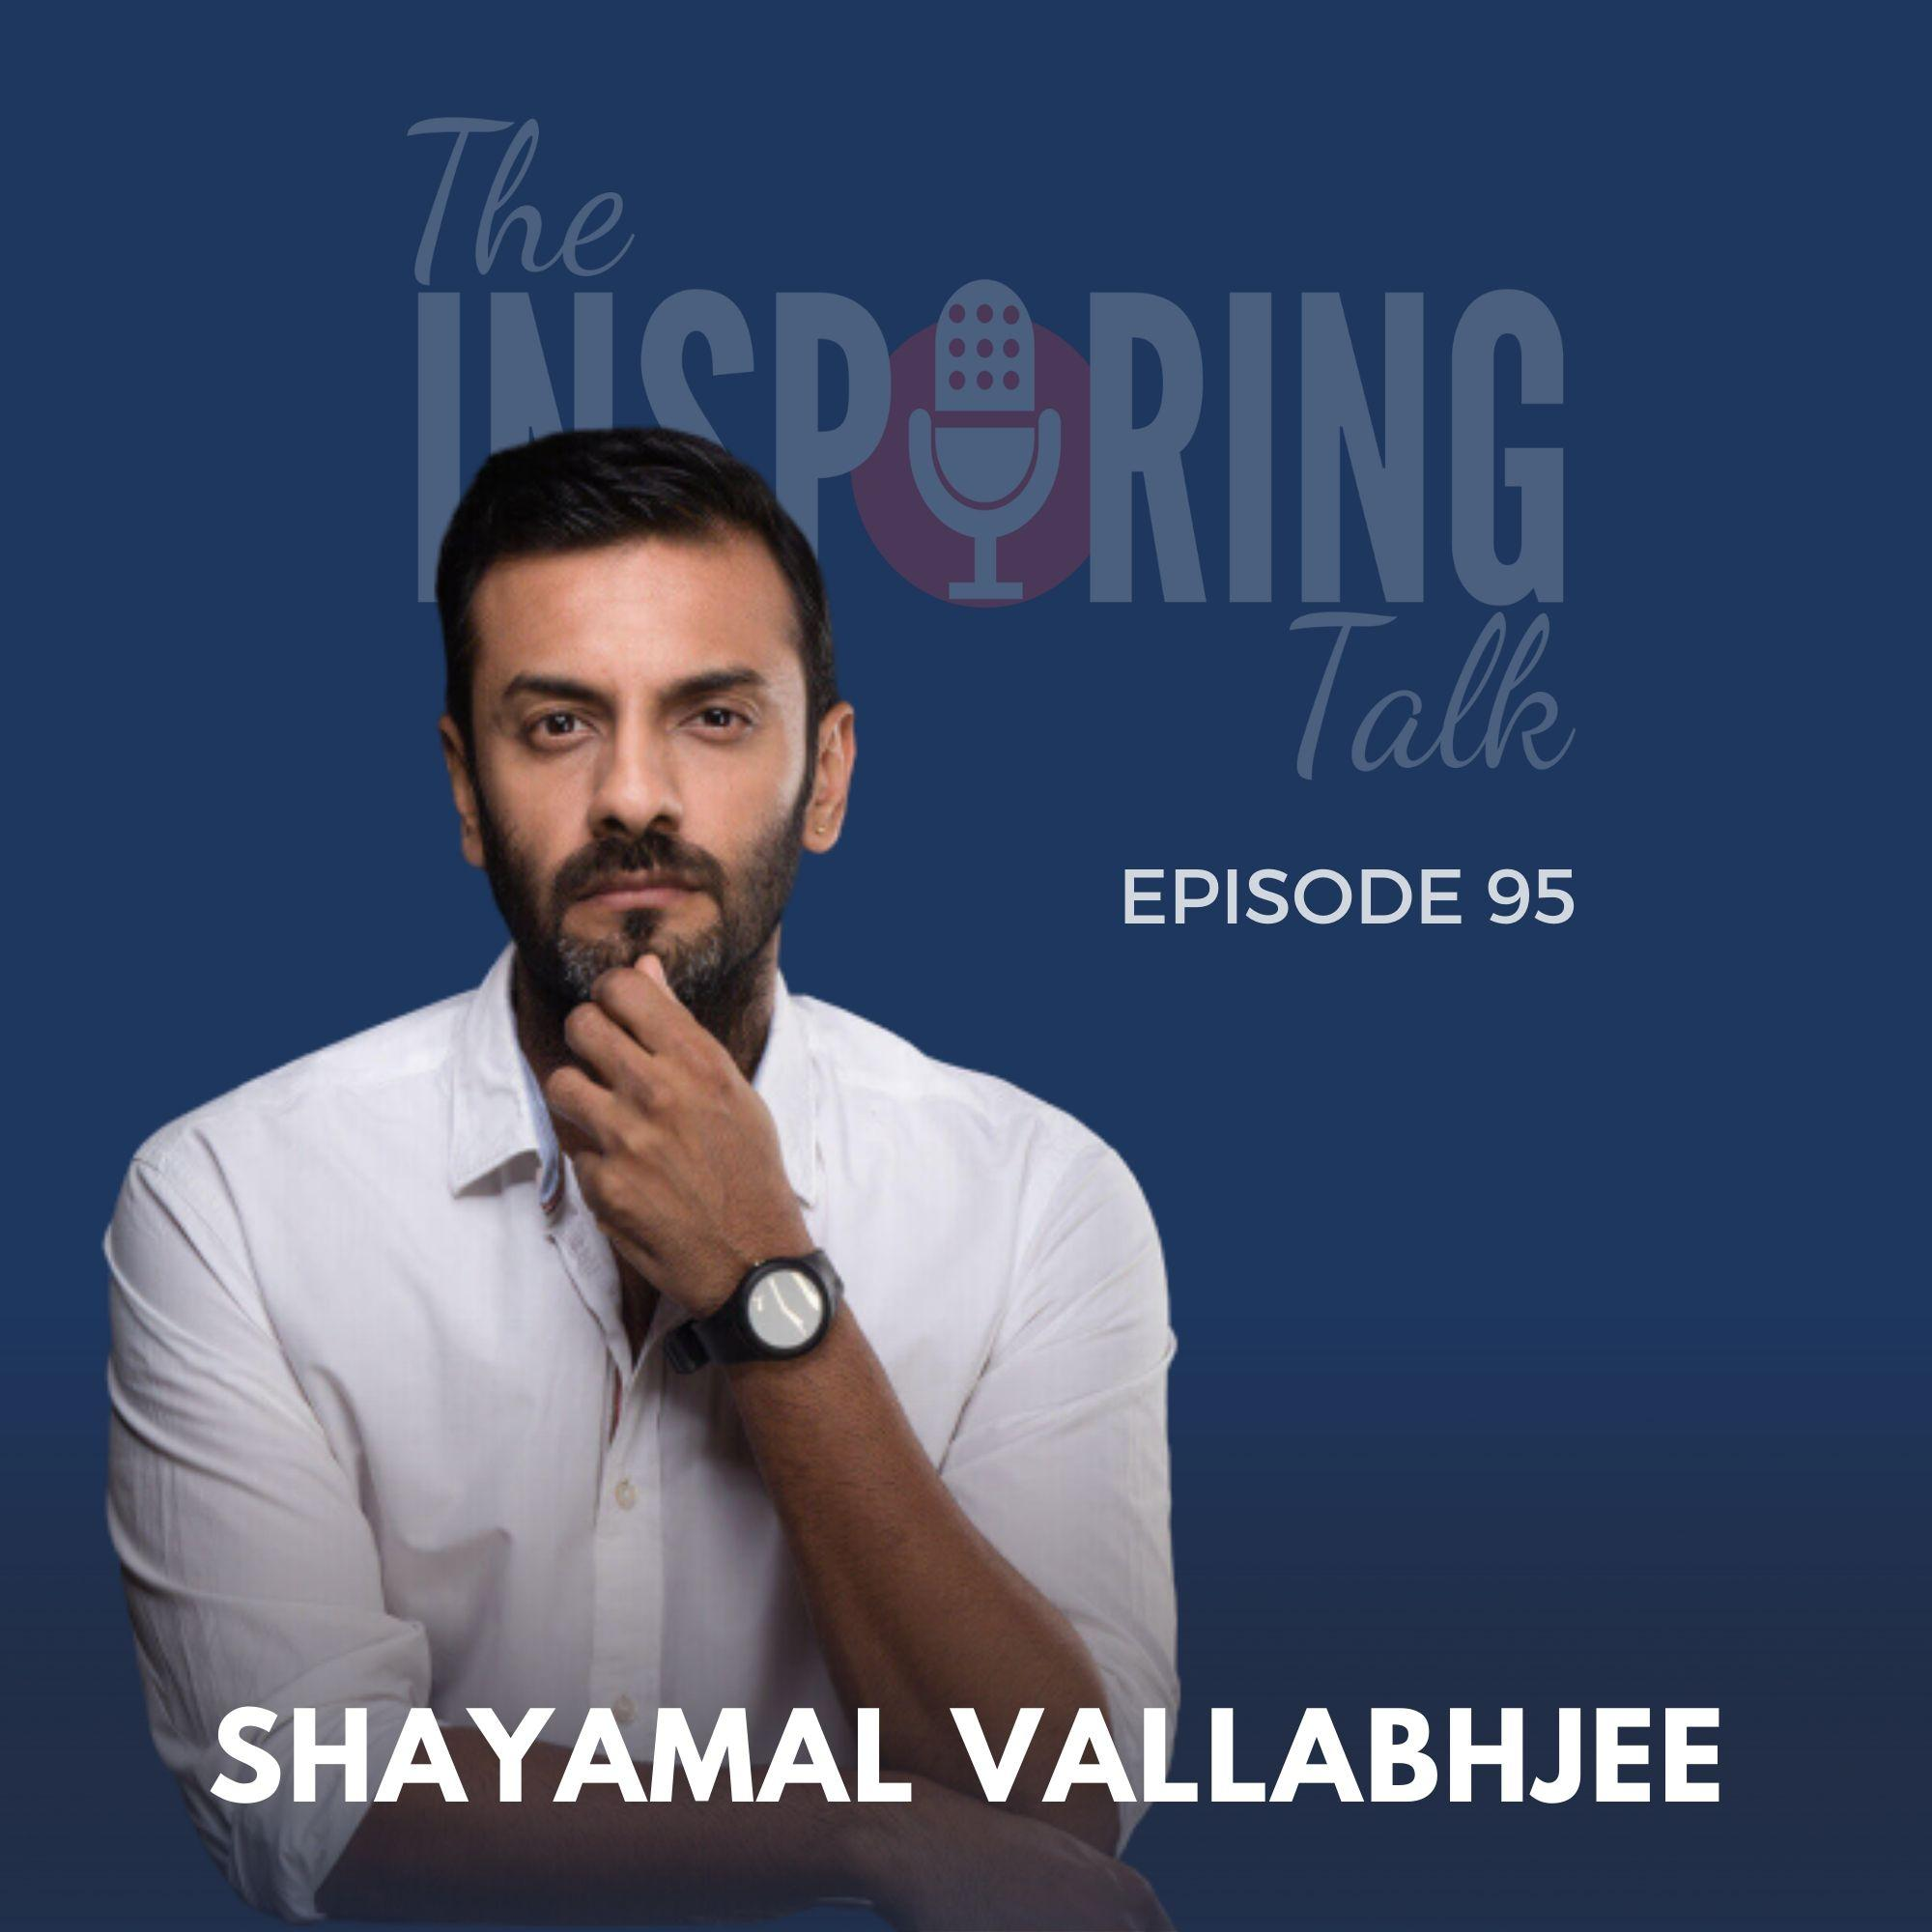 India's Finest Sports Scientist Shayamal Vallabhjee on Confidence, Balance and Personal Mastery: TIT95